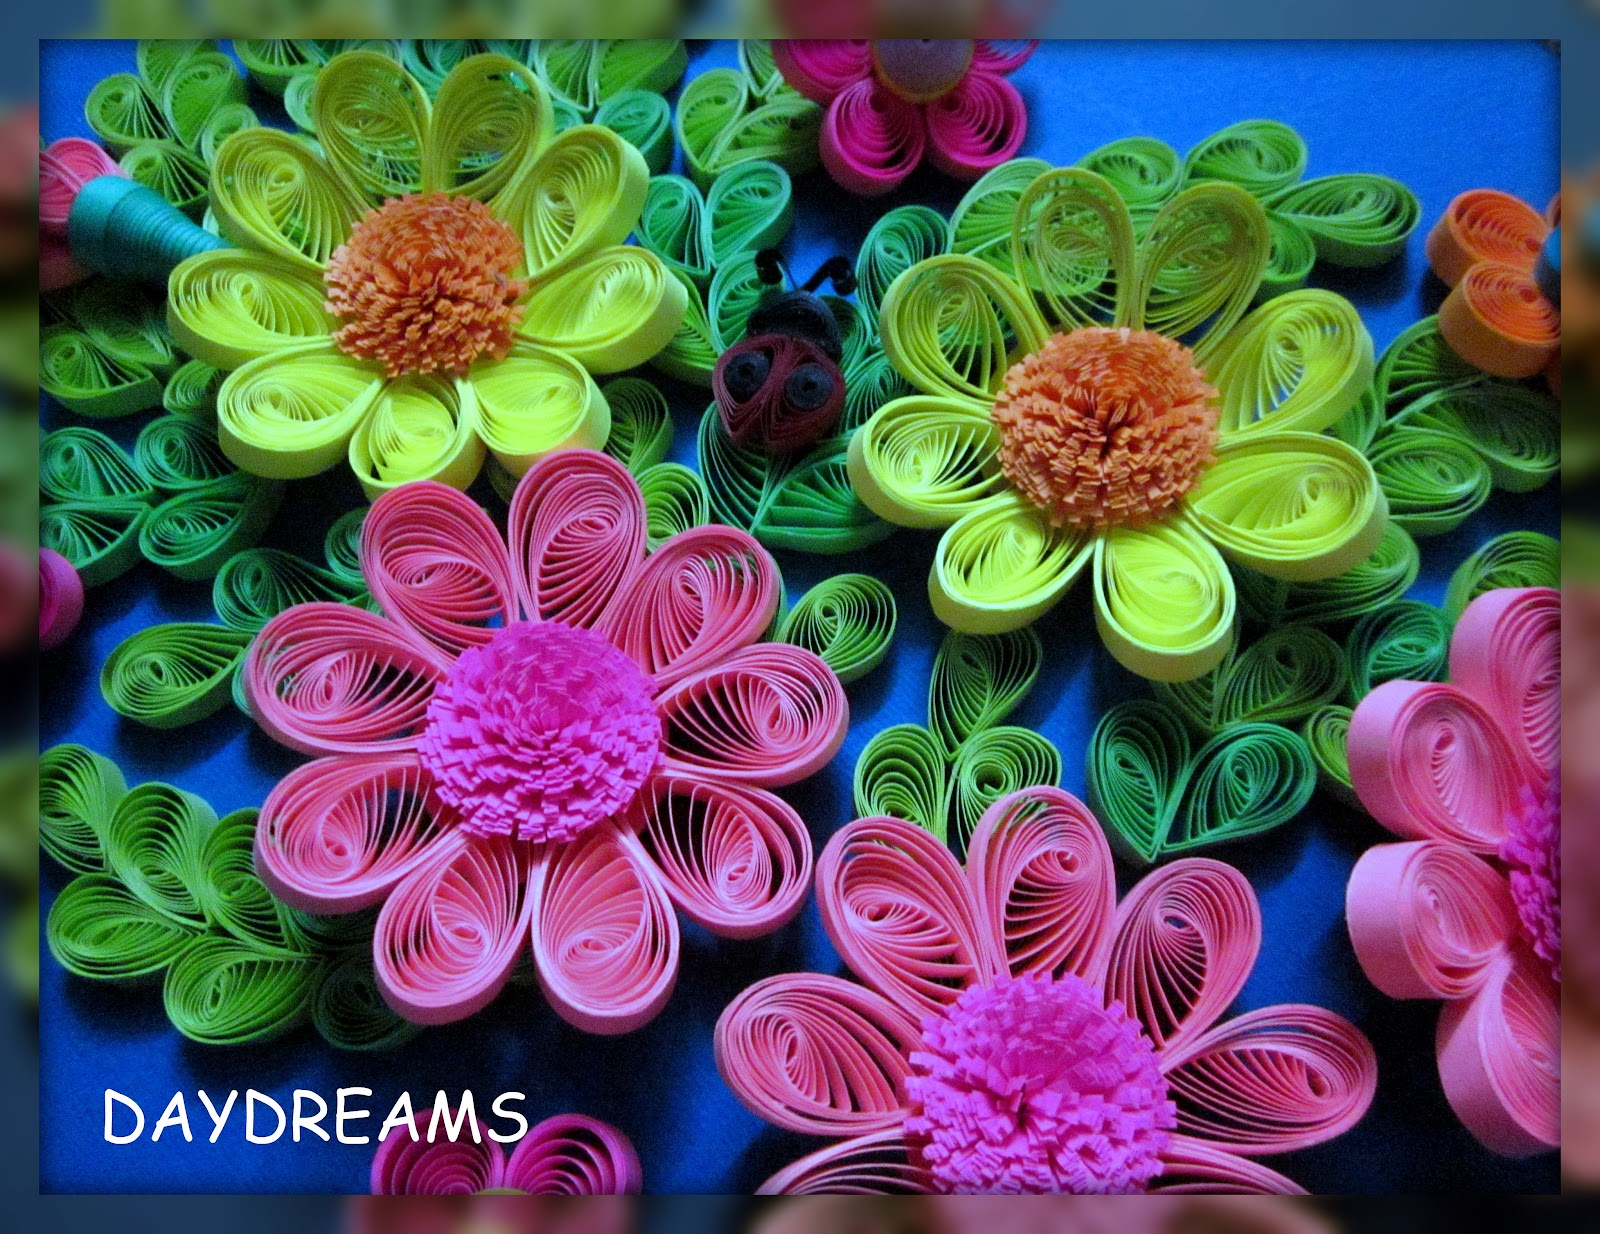 Daydreams Quilled Flowers Framed Work